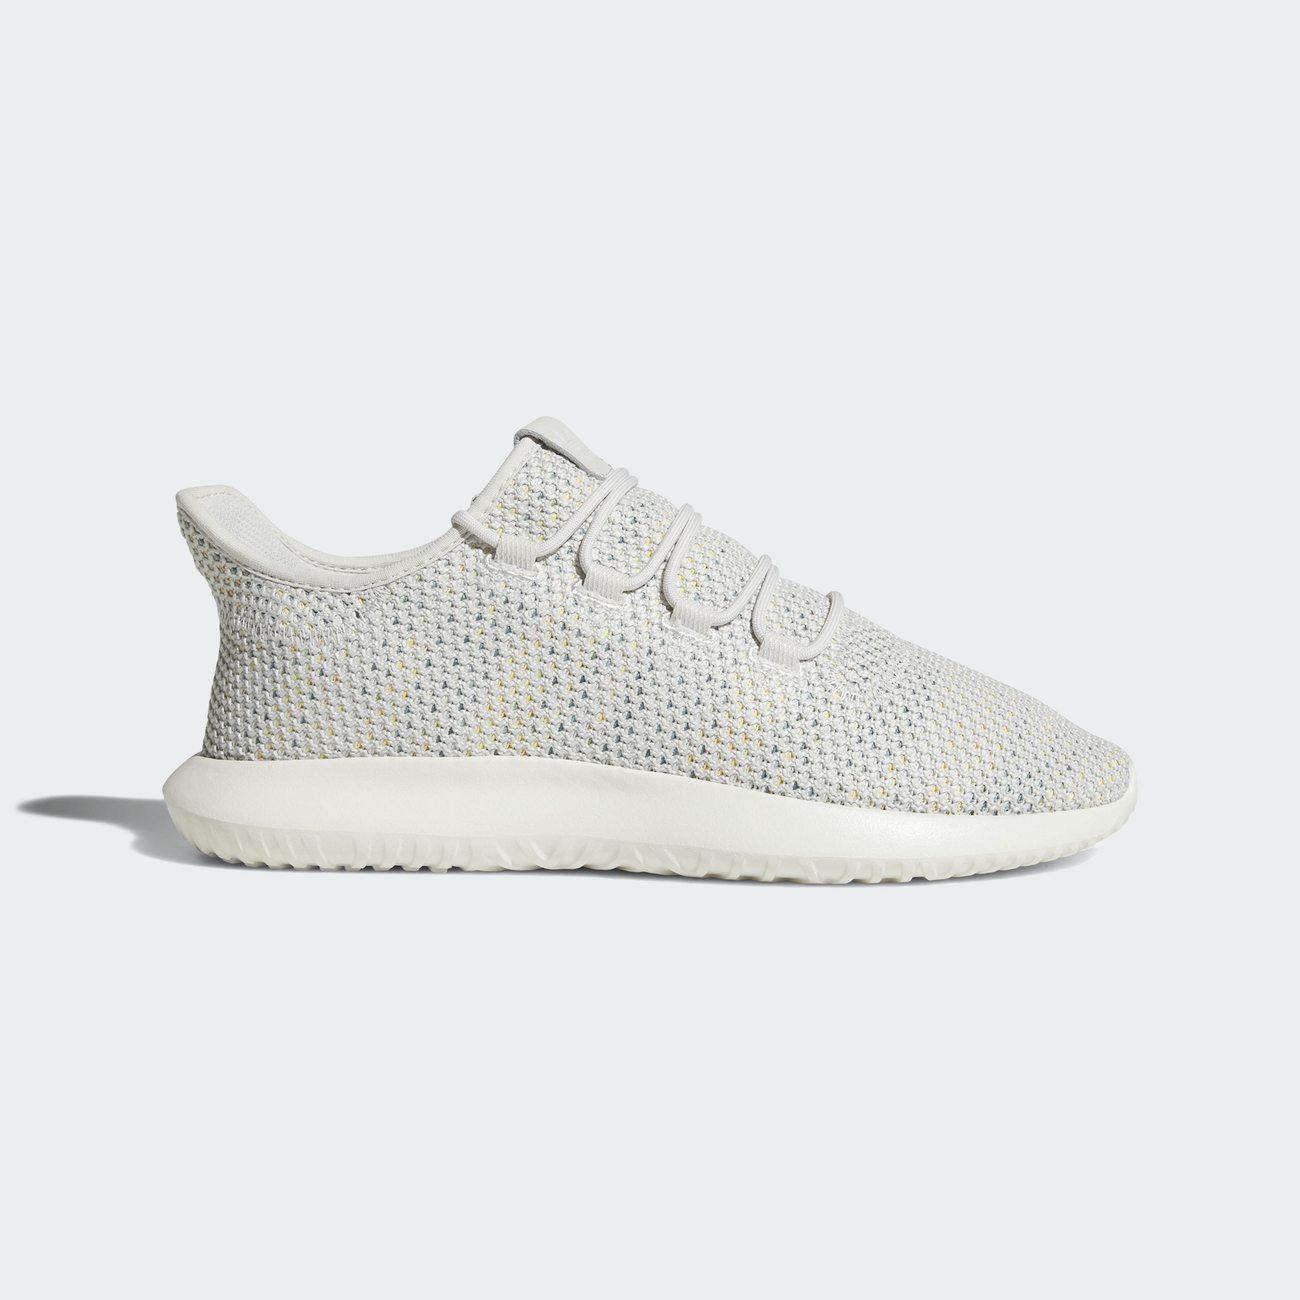 Adidas Originals Shoes Tubular Shadow Ck